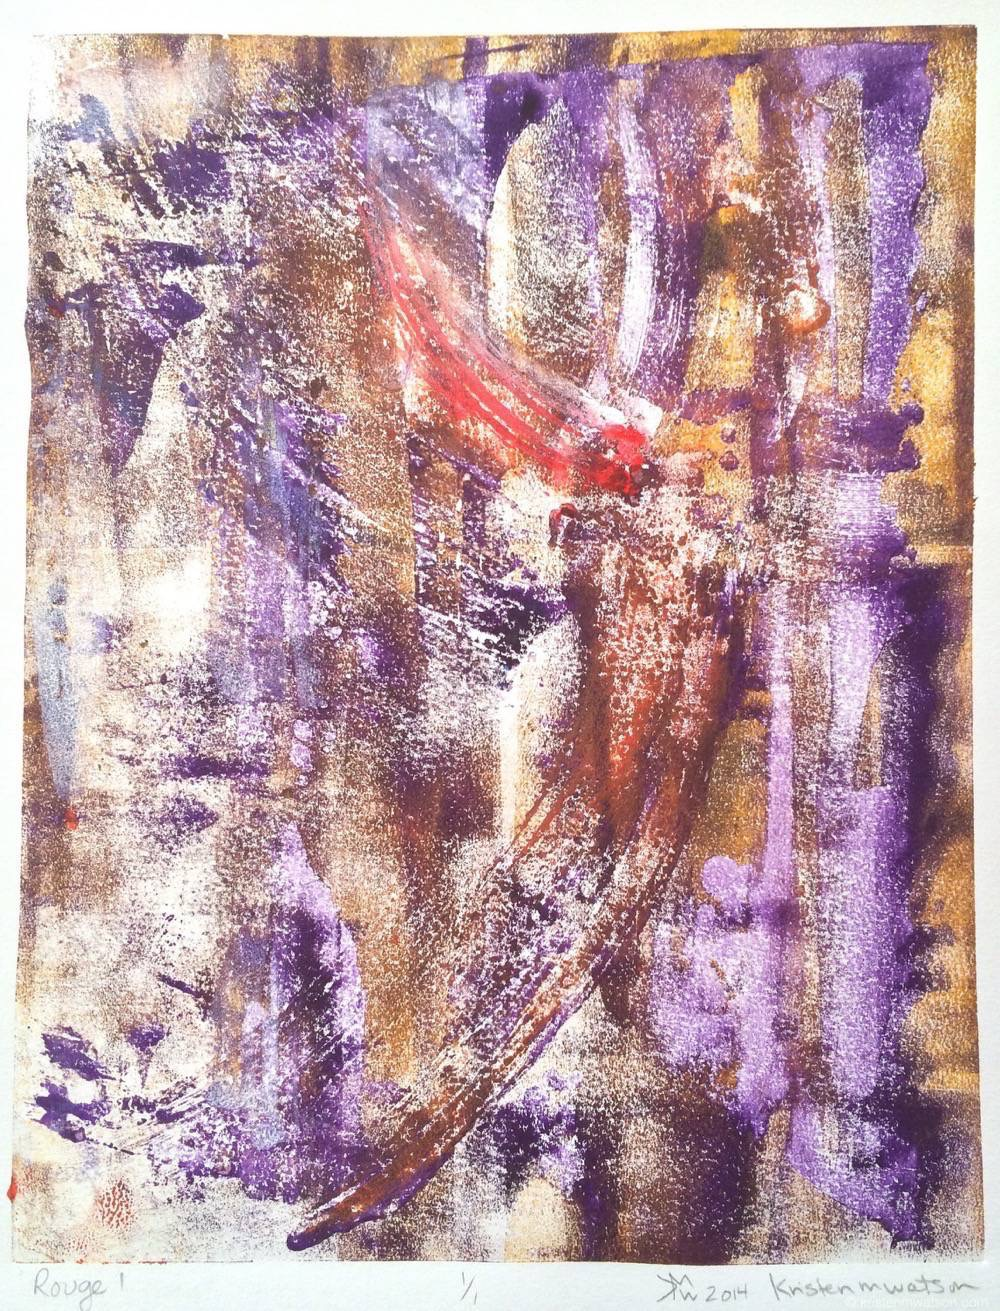 Rouge_2014_Monotype_12x9in_©2015 kristenmwatson 2.jpg